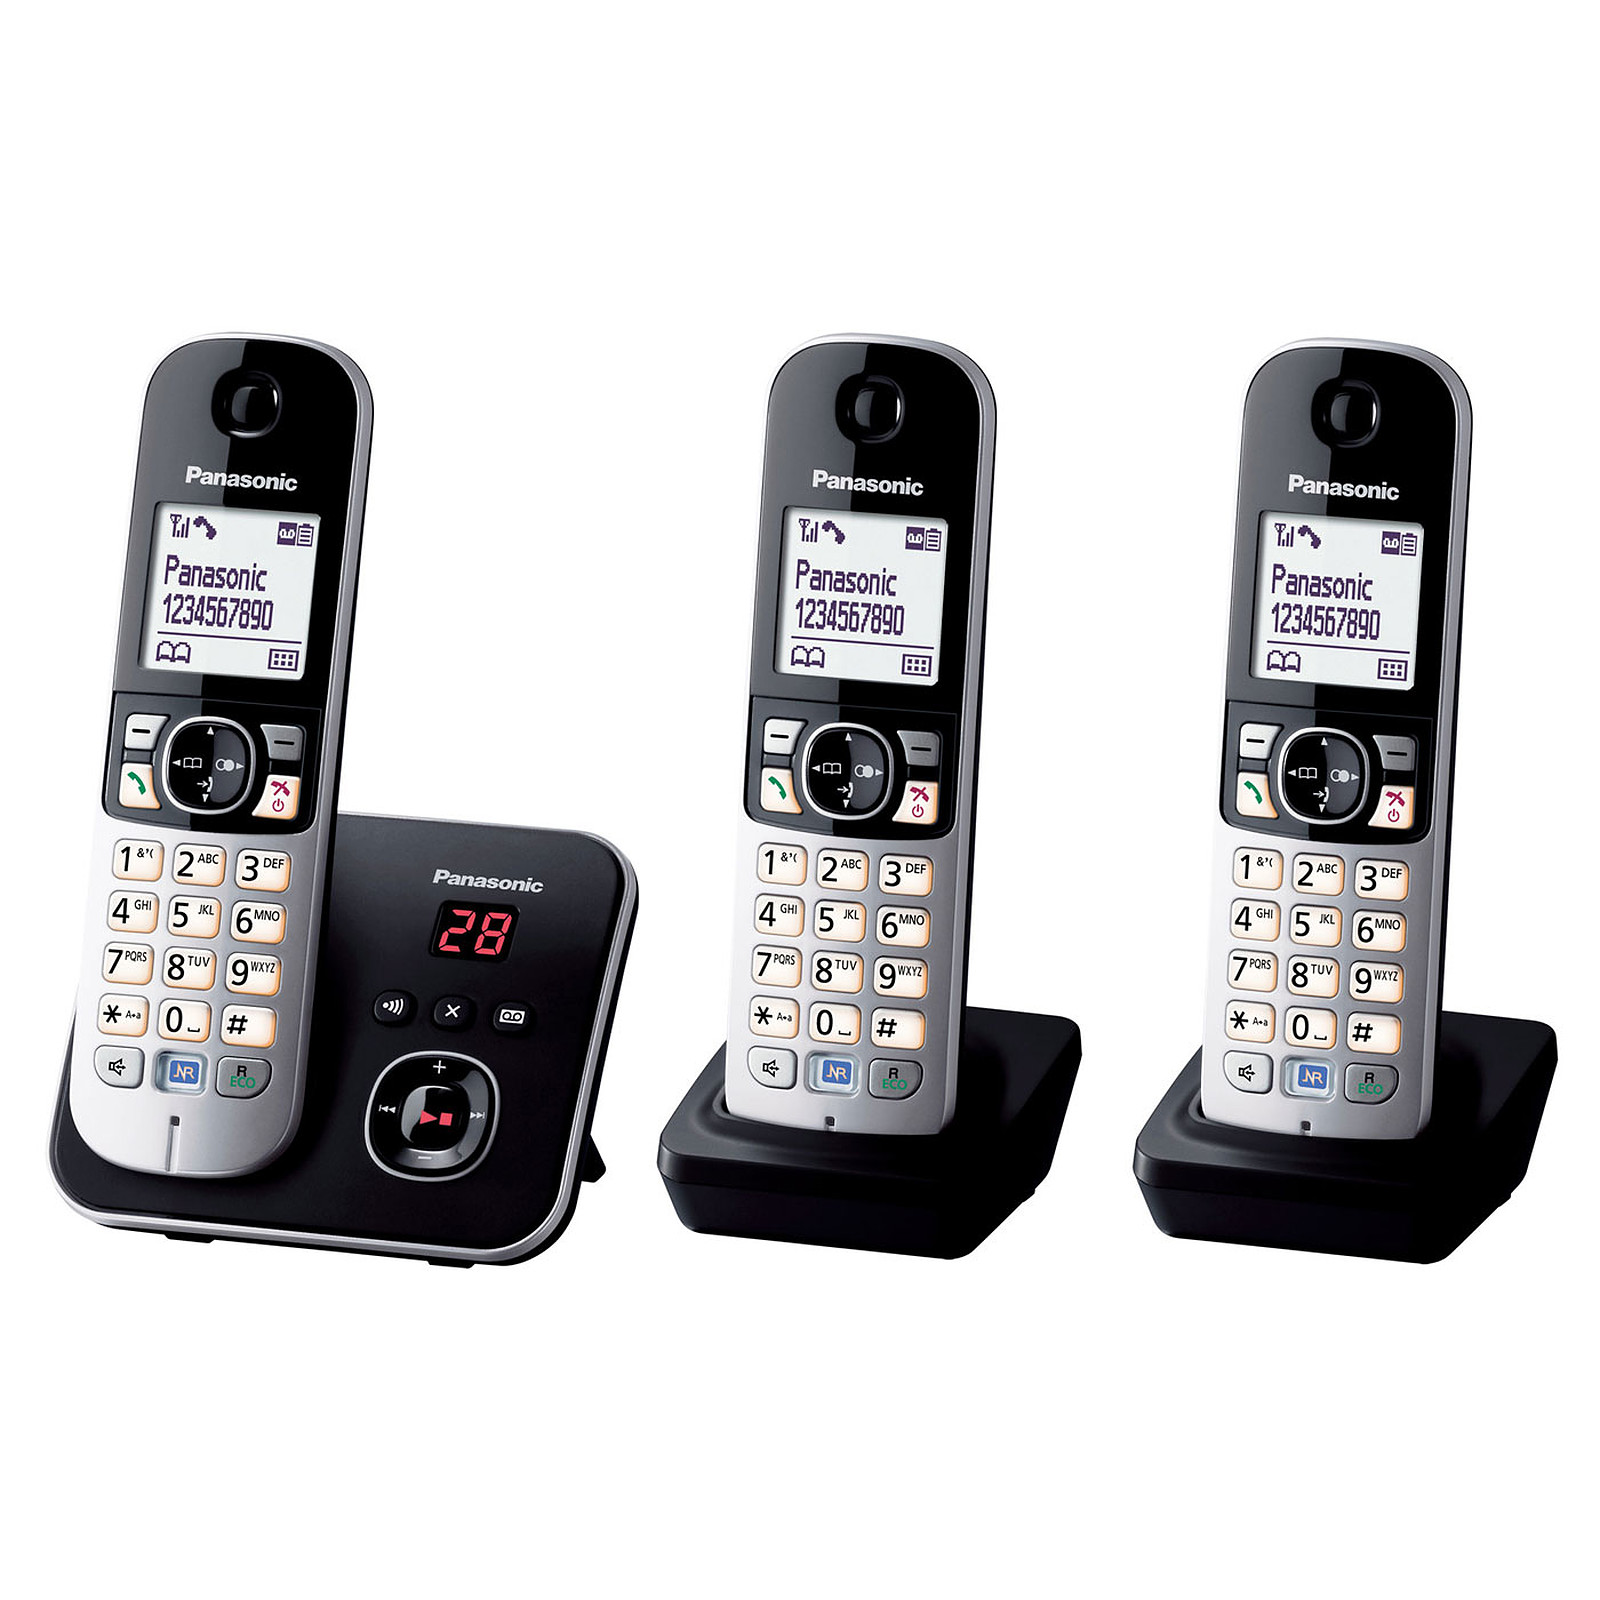 panasonic kx tg6823fr trio noir t l phone sans fil panasonic sur. Black Bedroom Furniture Sets. Home Design Ideas